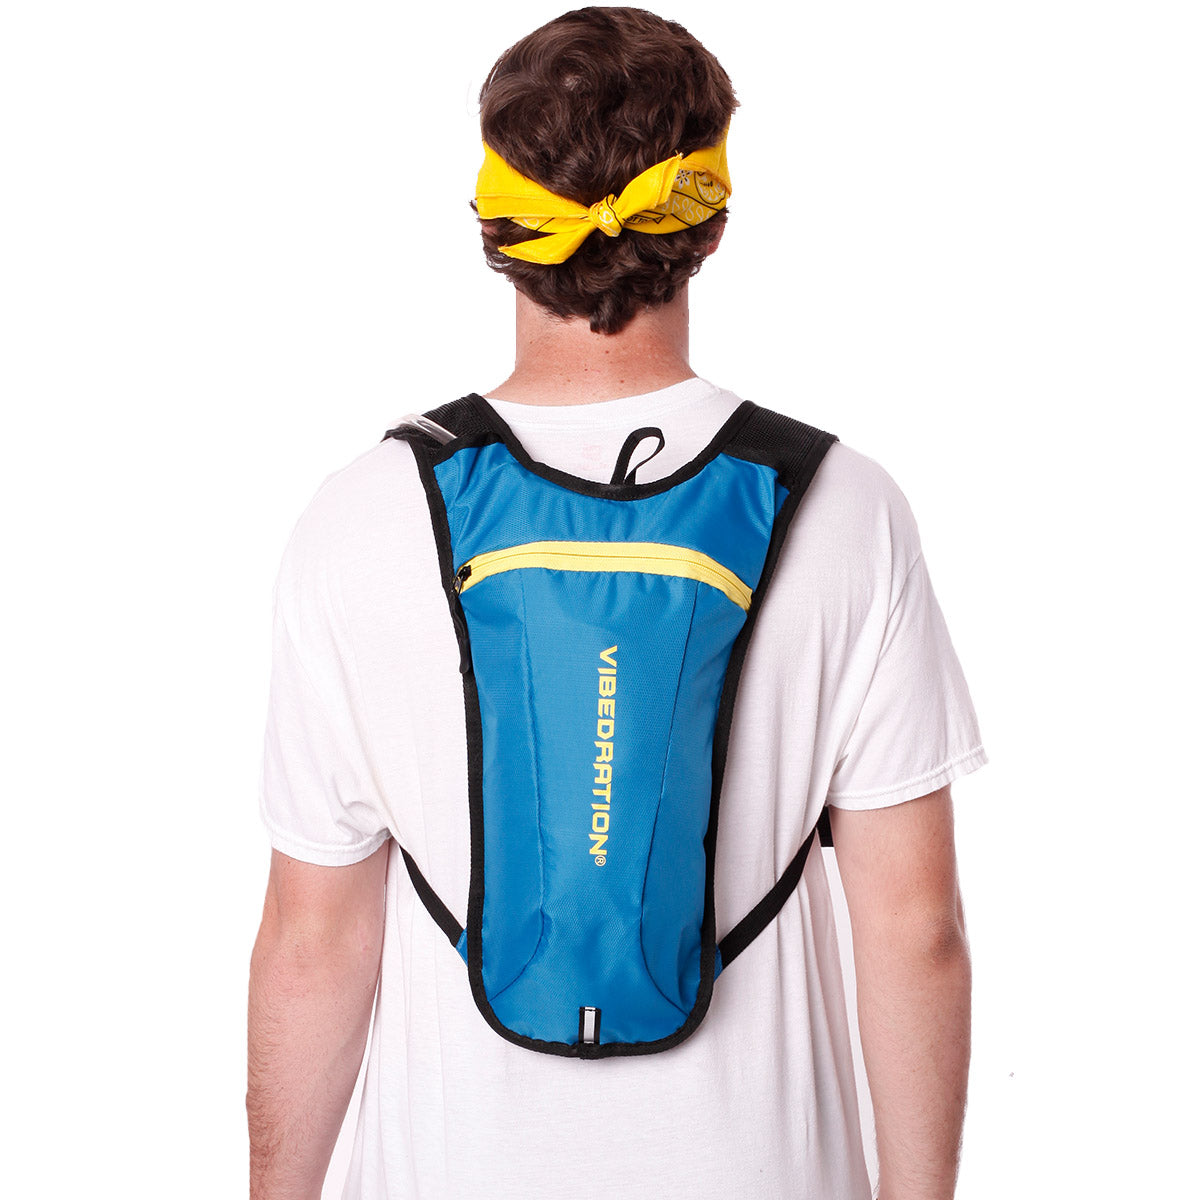 Back view of male wearing baby blue and yellow water pack.